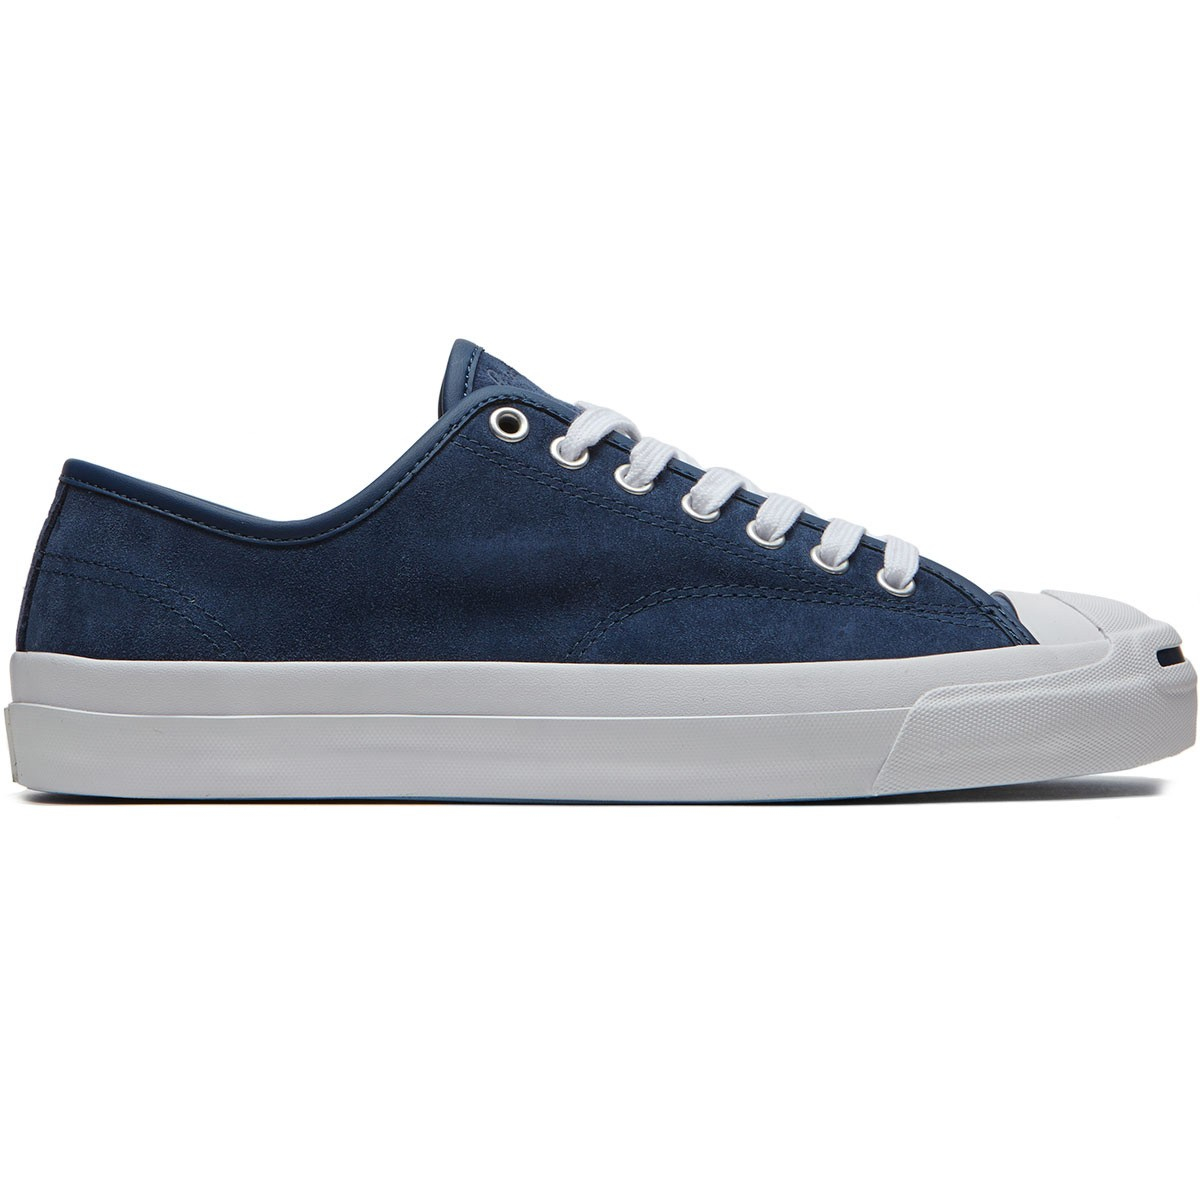 Converse X Polar Jack Purcell Pro Shoes